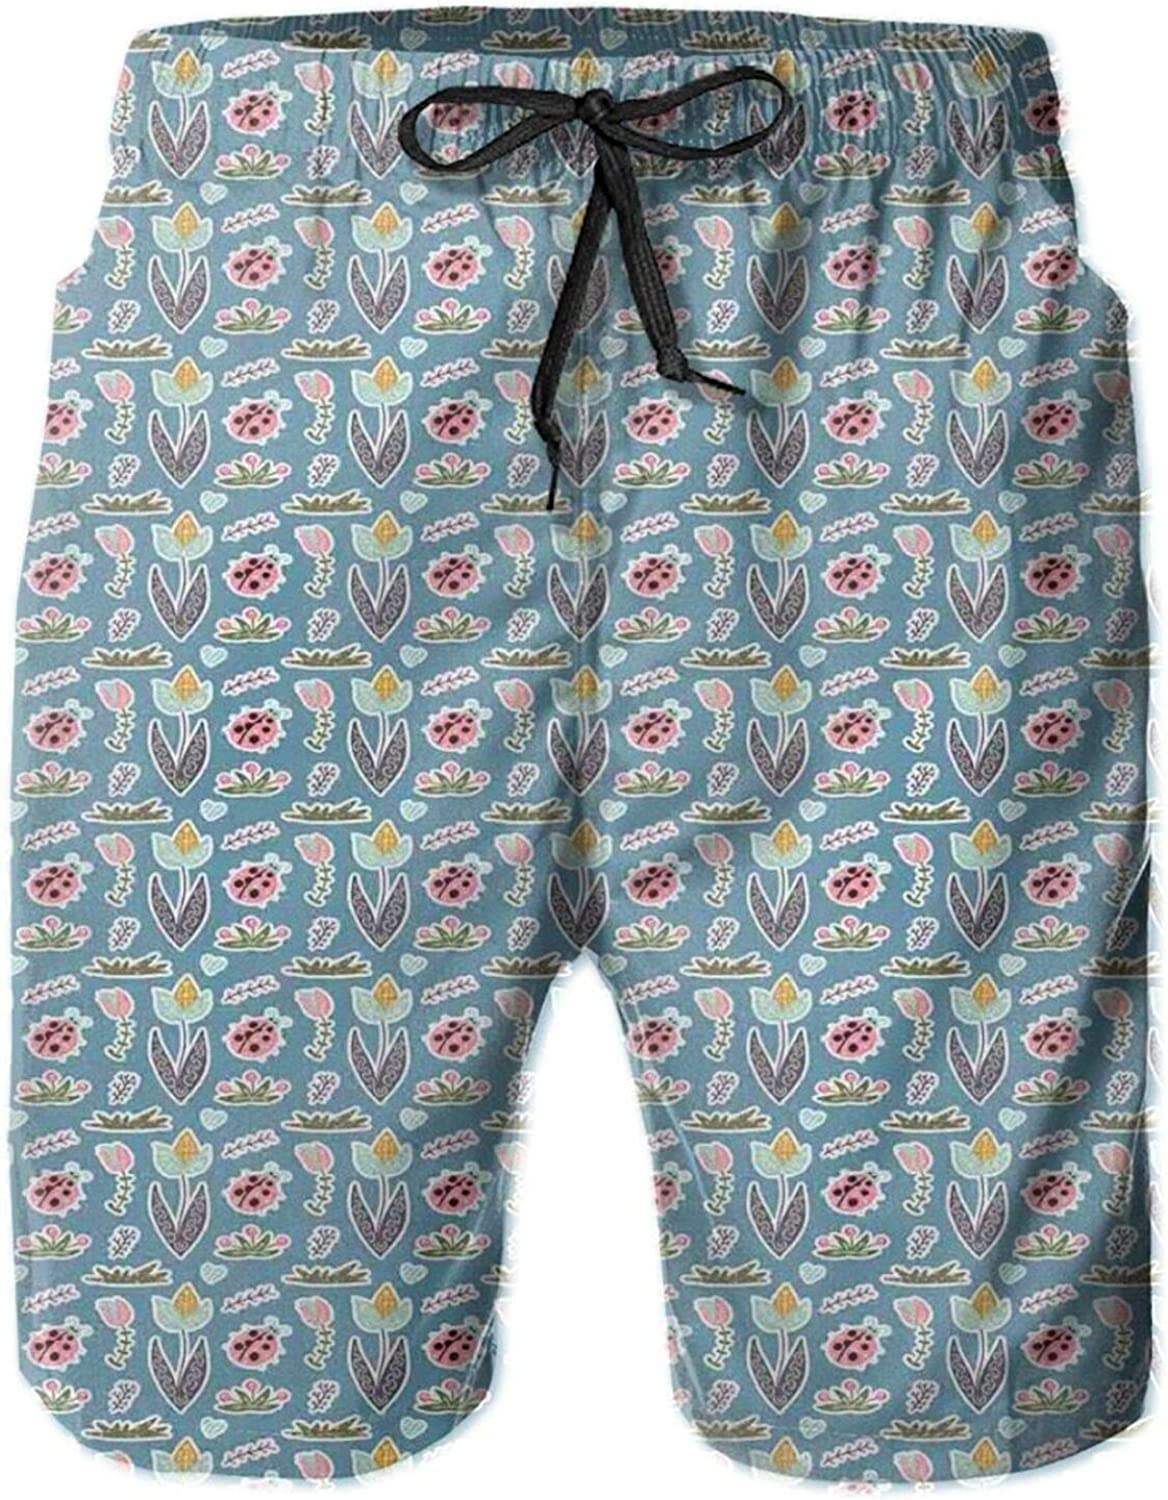 Doodle Forest Elements with Ladybugs Flowers and Thickets Ornamented with Curls Printed Beach Shorts for Men Swim Trucks Mesh Lining,XL